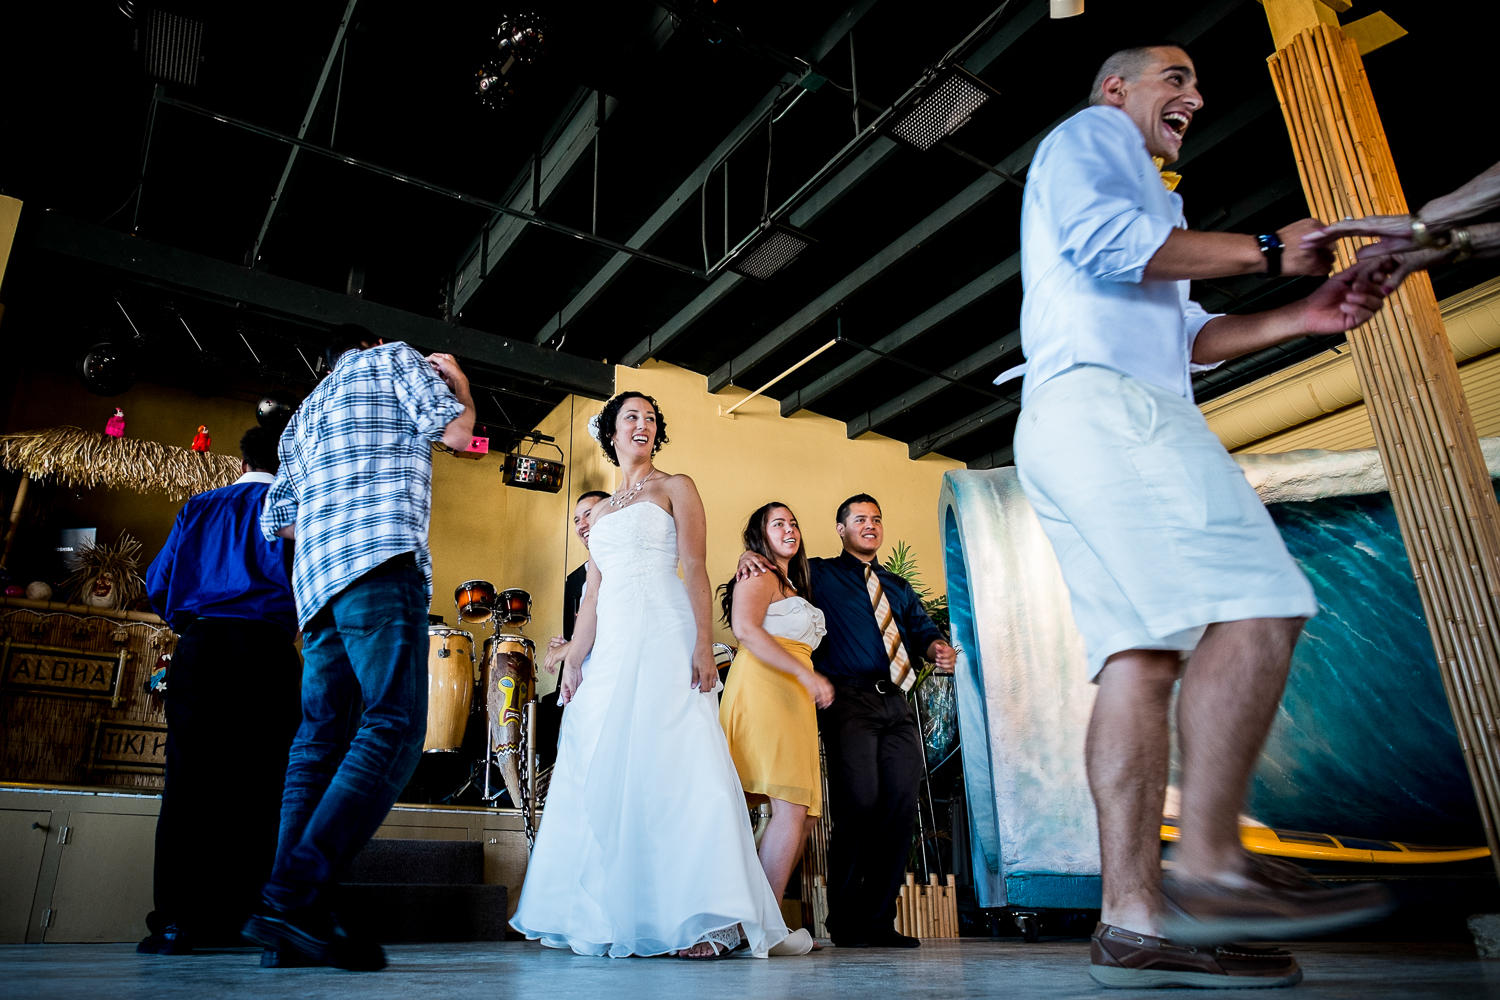 Hugo_and_Giselle_Wedding-2023-f.jpg